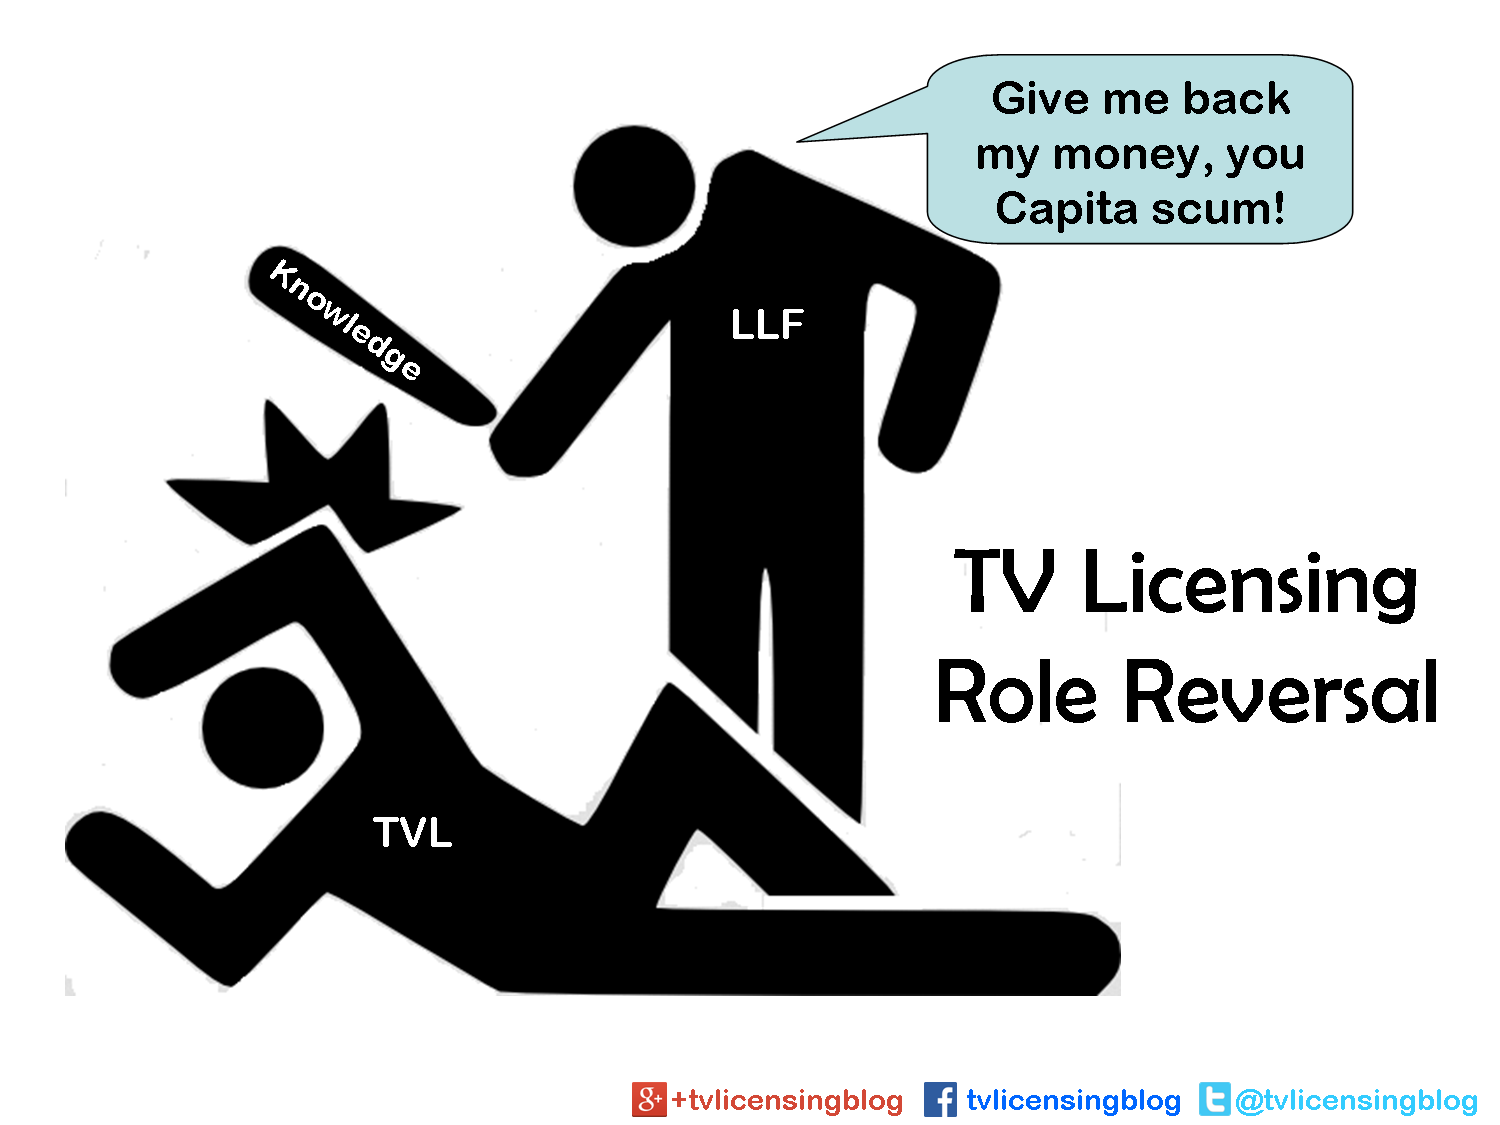 Beat TV Licensing